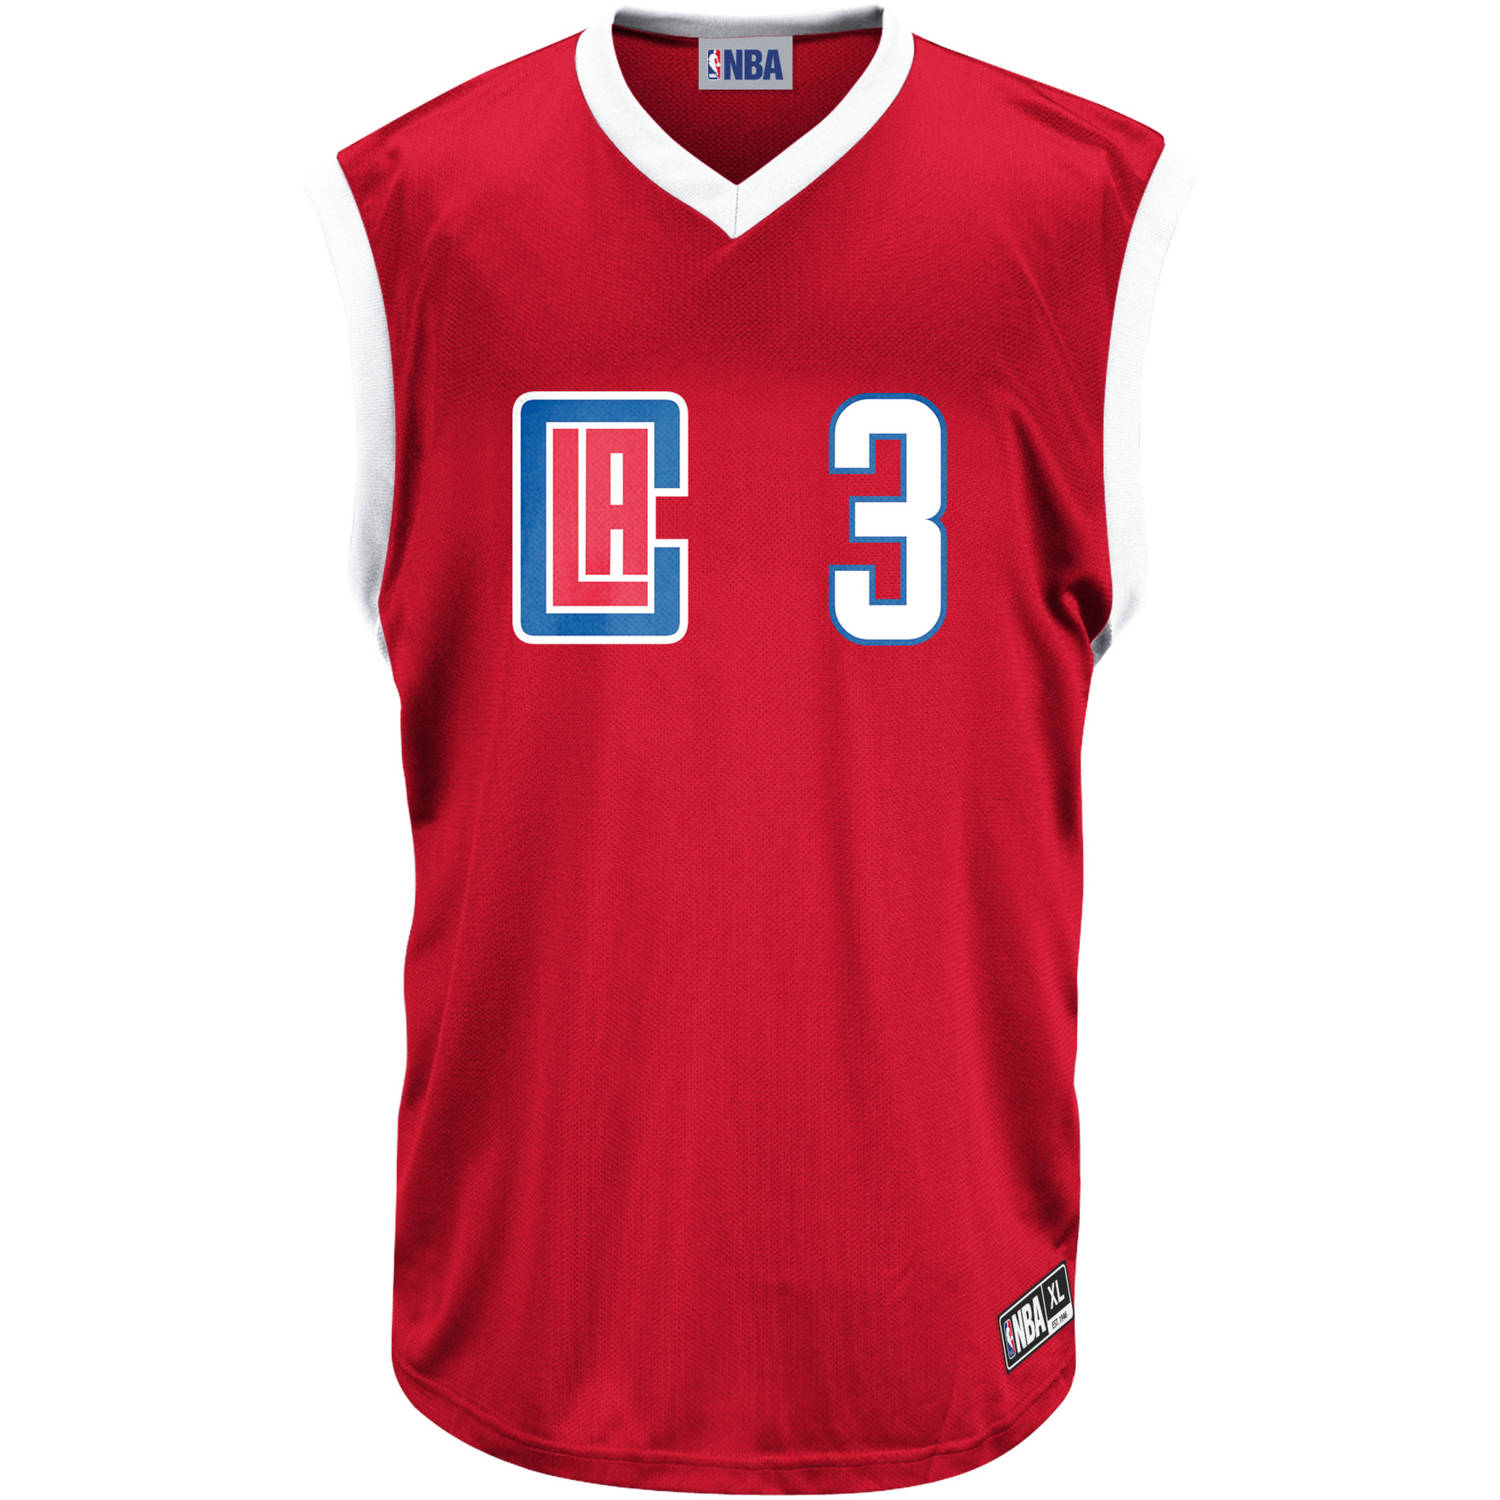 NBA Los Angeles Clippers Men's Paul Team Replica Jersey